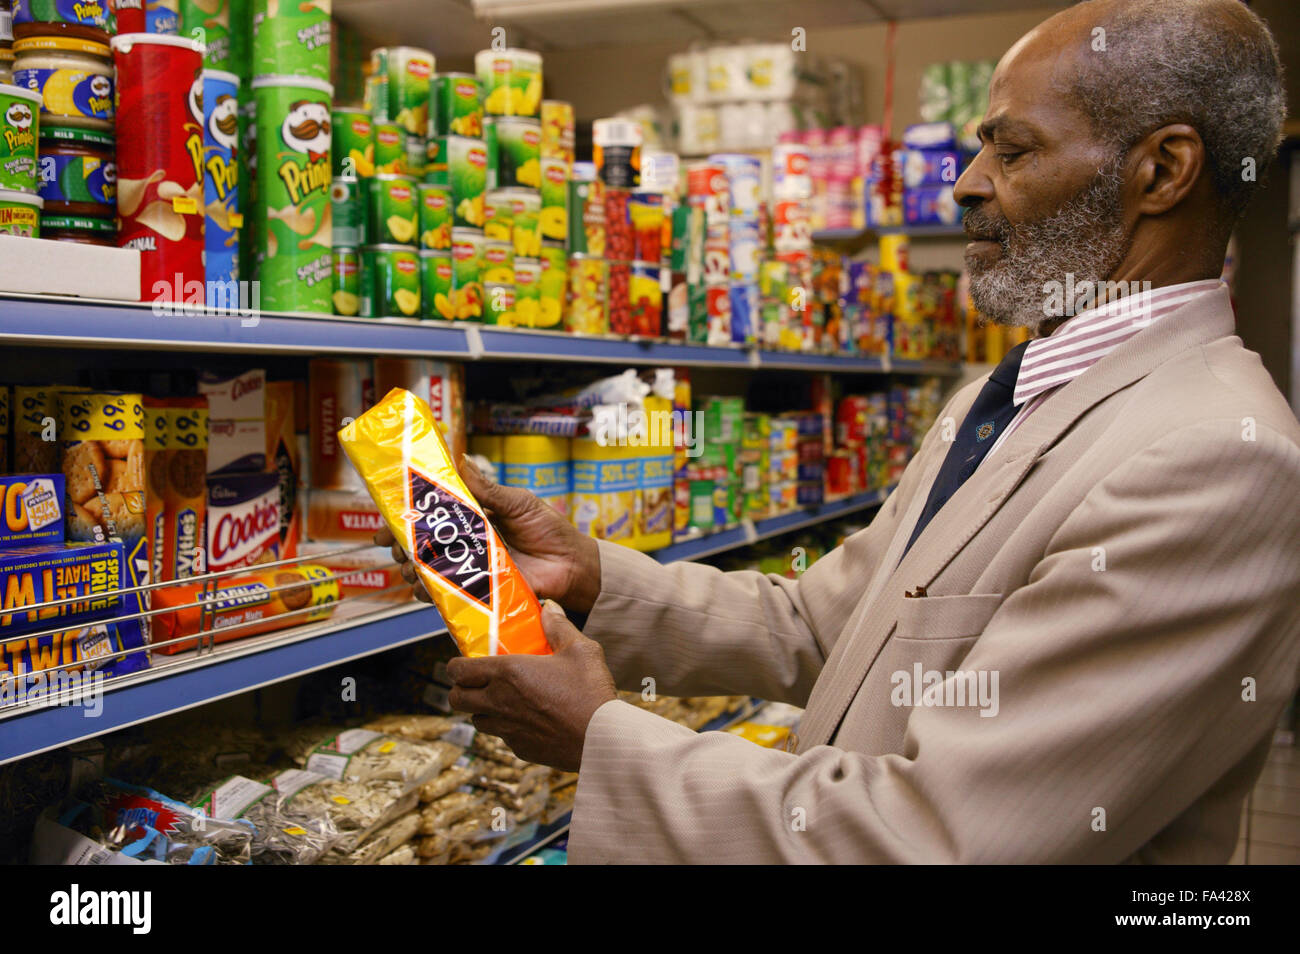 Man at his local shop; East Midlands Supermarket; Nottingham, - Stock Image